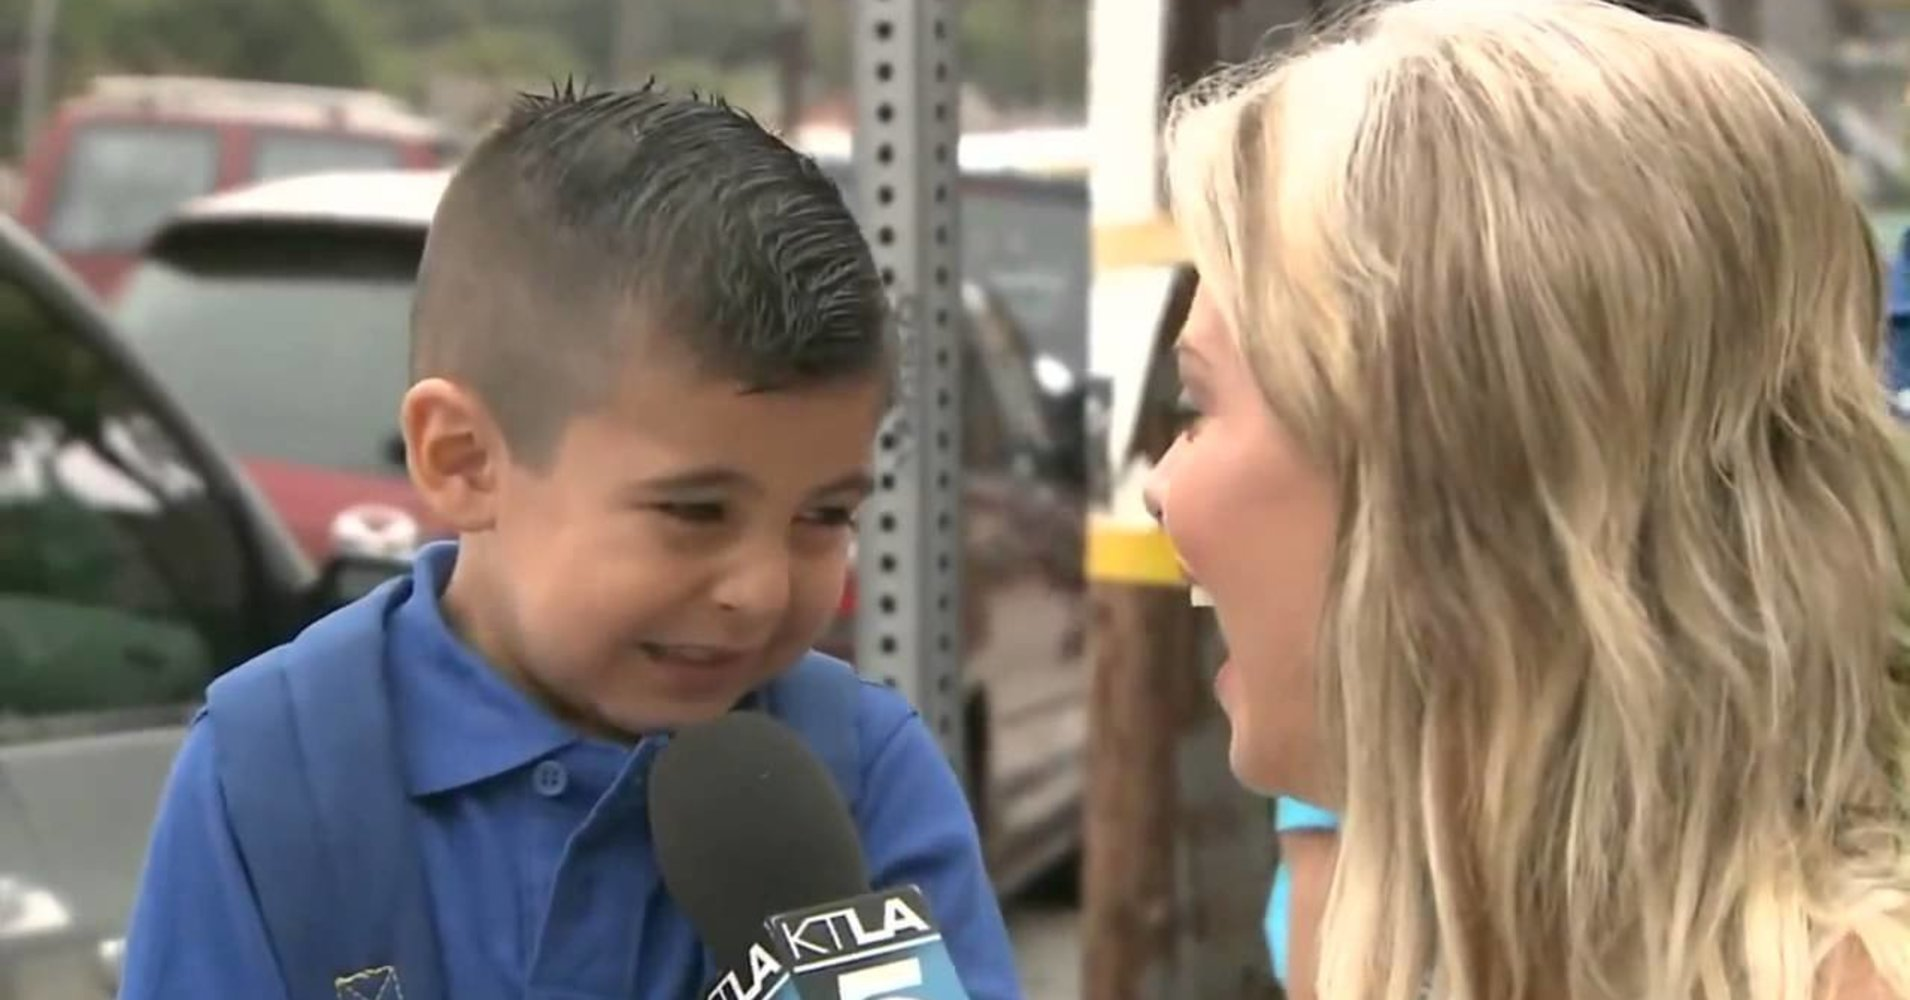 Kid Who Became a Meme After Crying on First Day of School Is a Big Boy Now, Will Still Miss His Mom